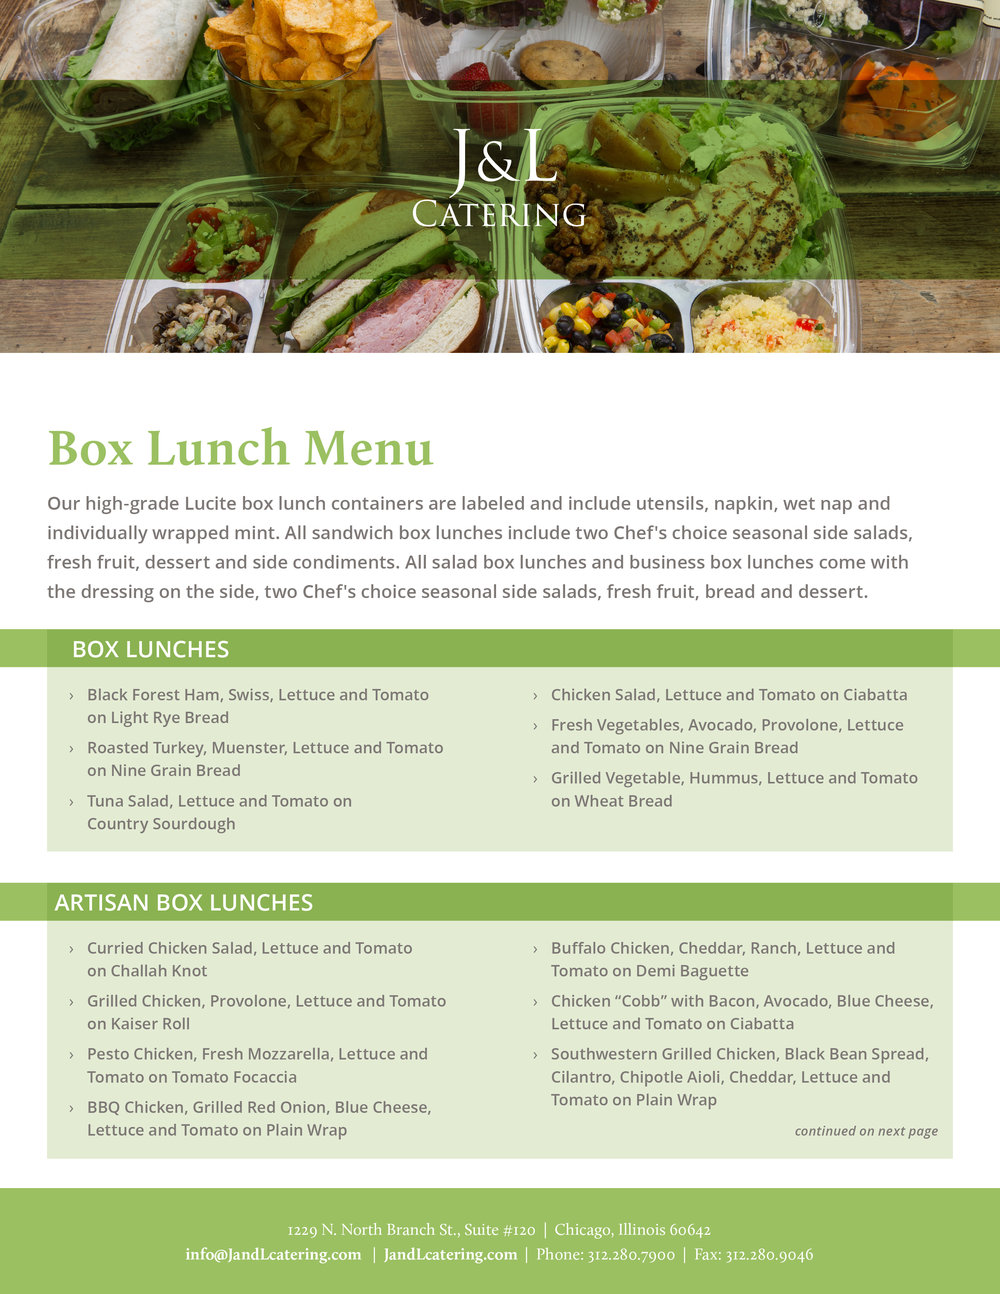 J&L_CorporateBoxLunchMenu-1.jpg